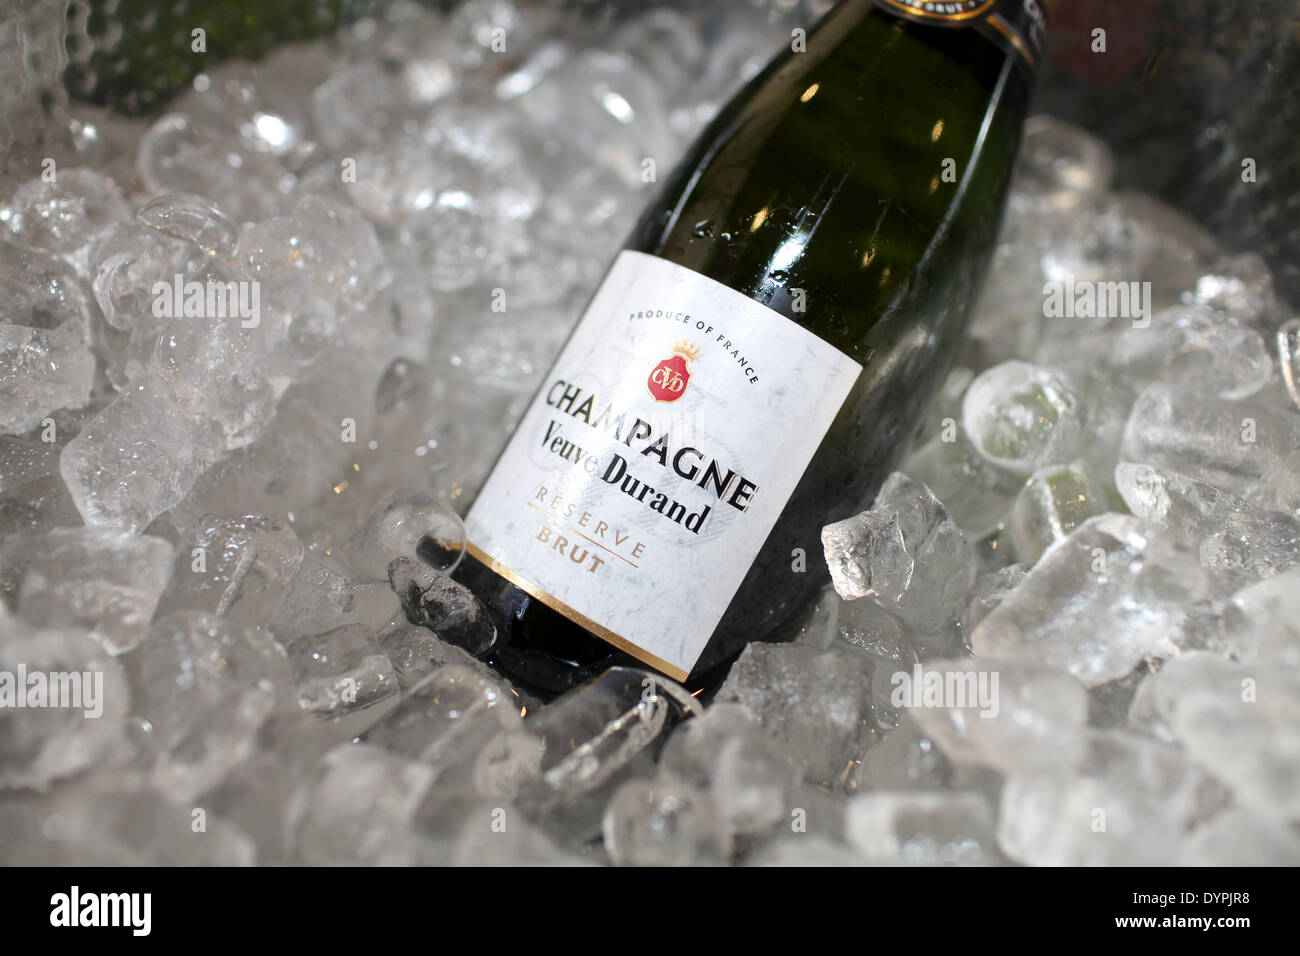 A bottle of champagne chilling on ice - Stock Image